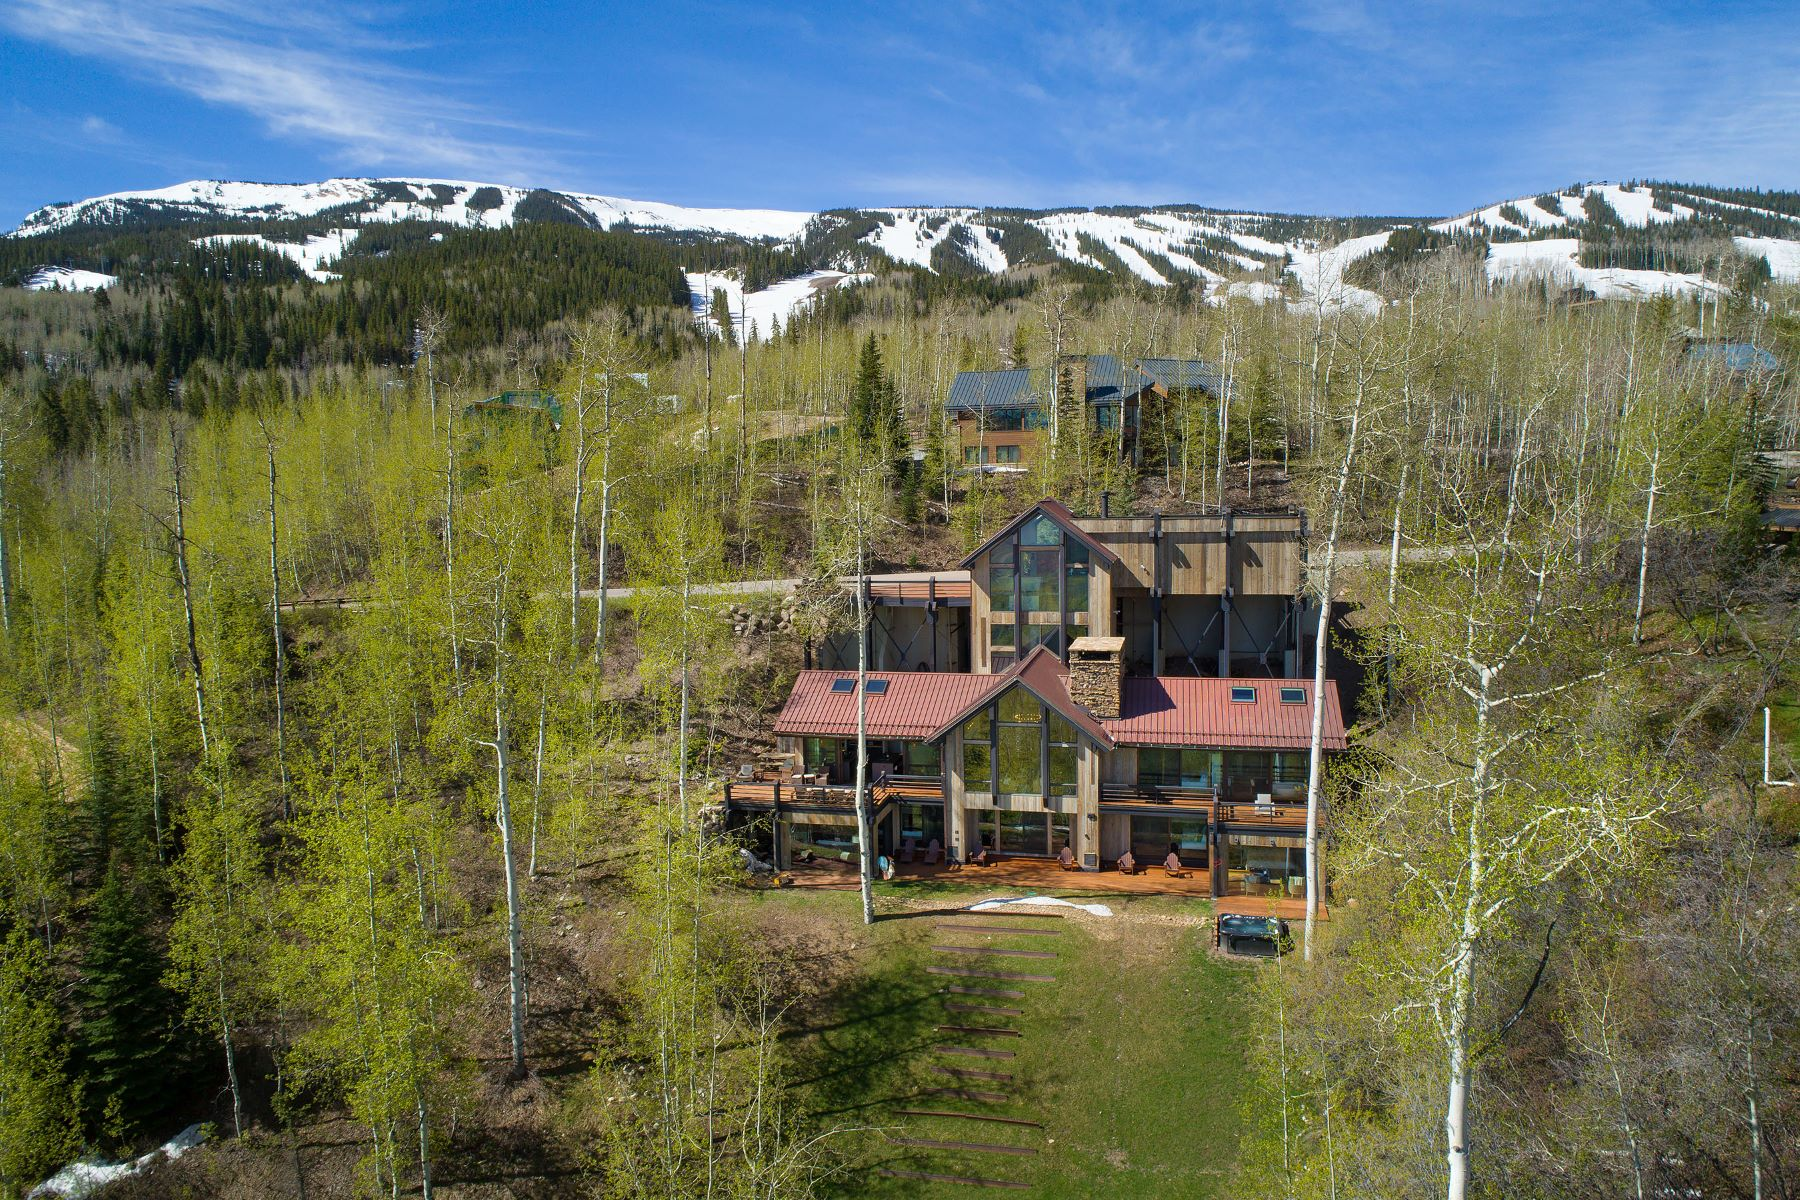 Single Family Homes for Sale at Overlooking Snowmass Village 1581 Wood Road Snowmass Village, Colorado 81615 United States